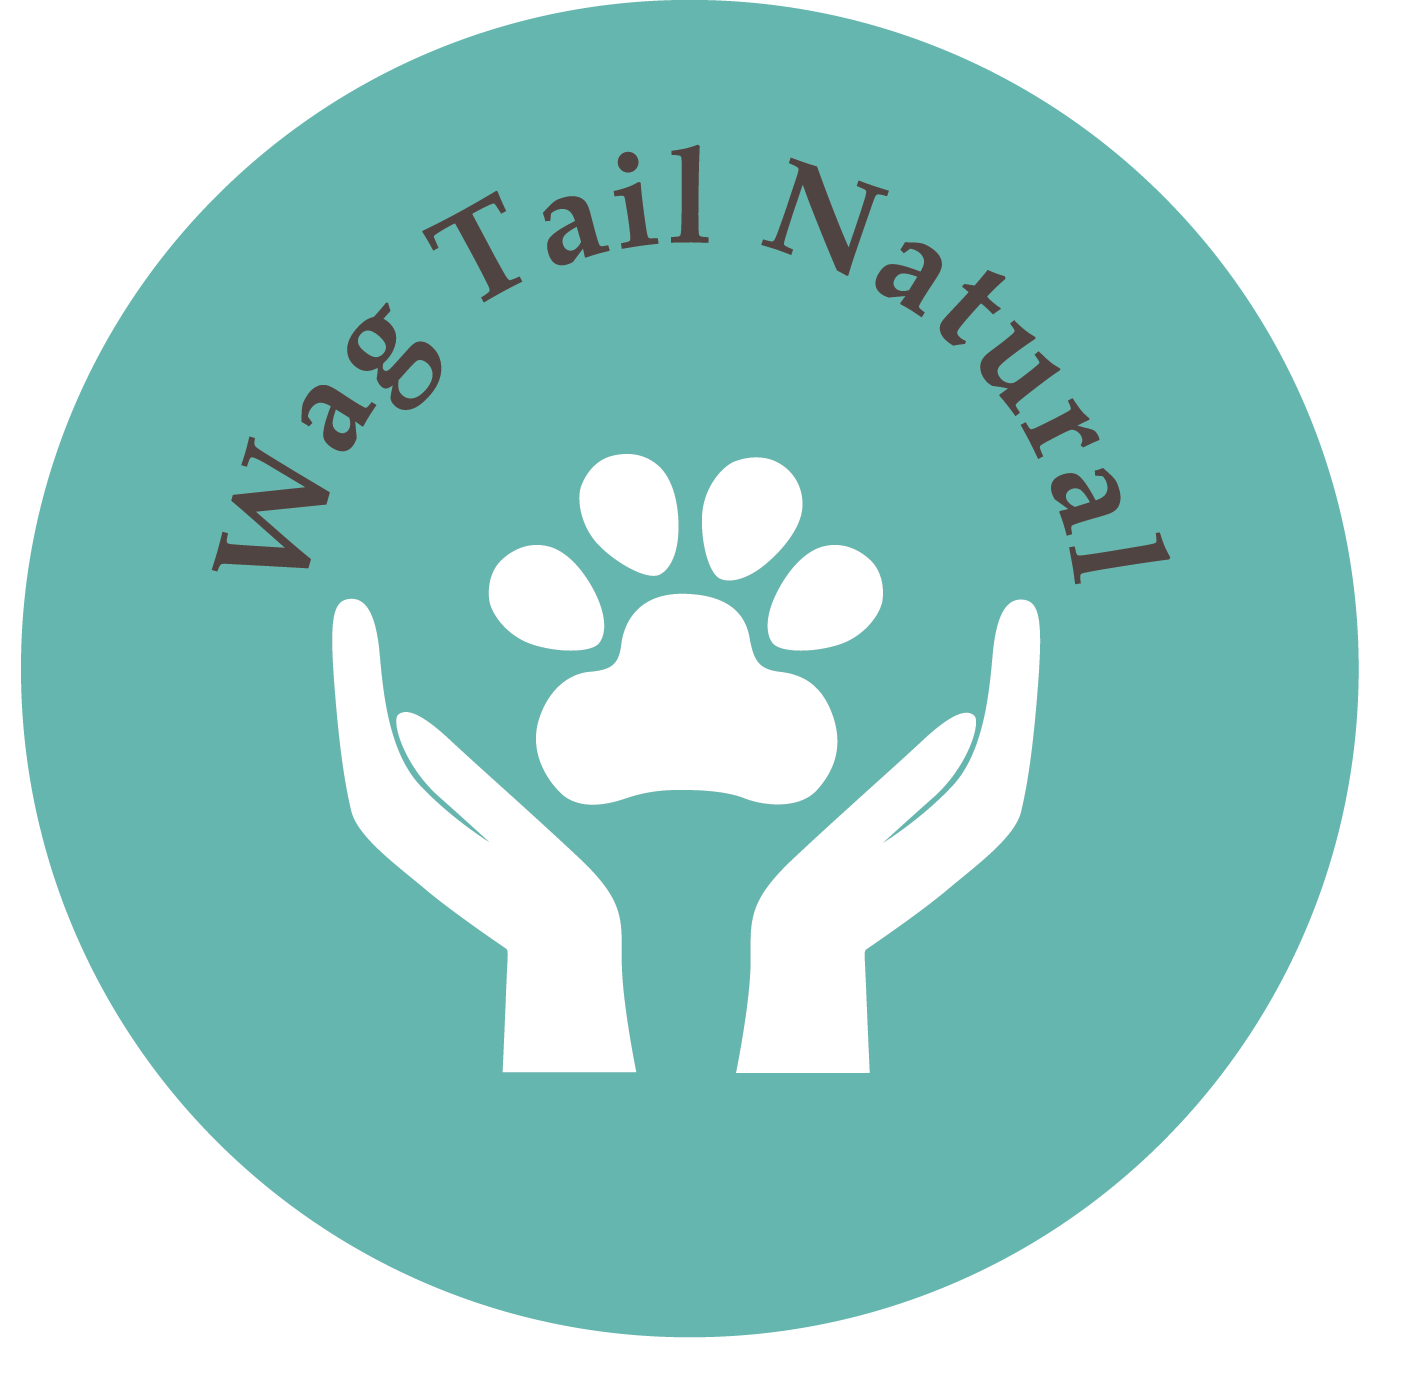 Wag Tail Natural